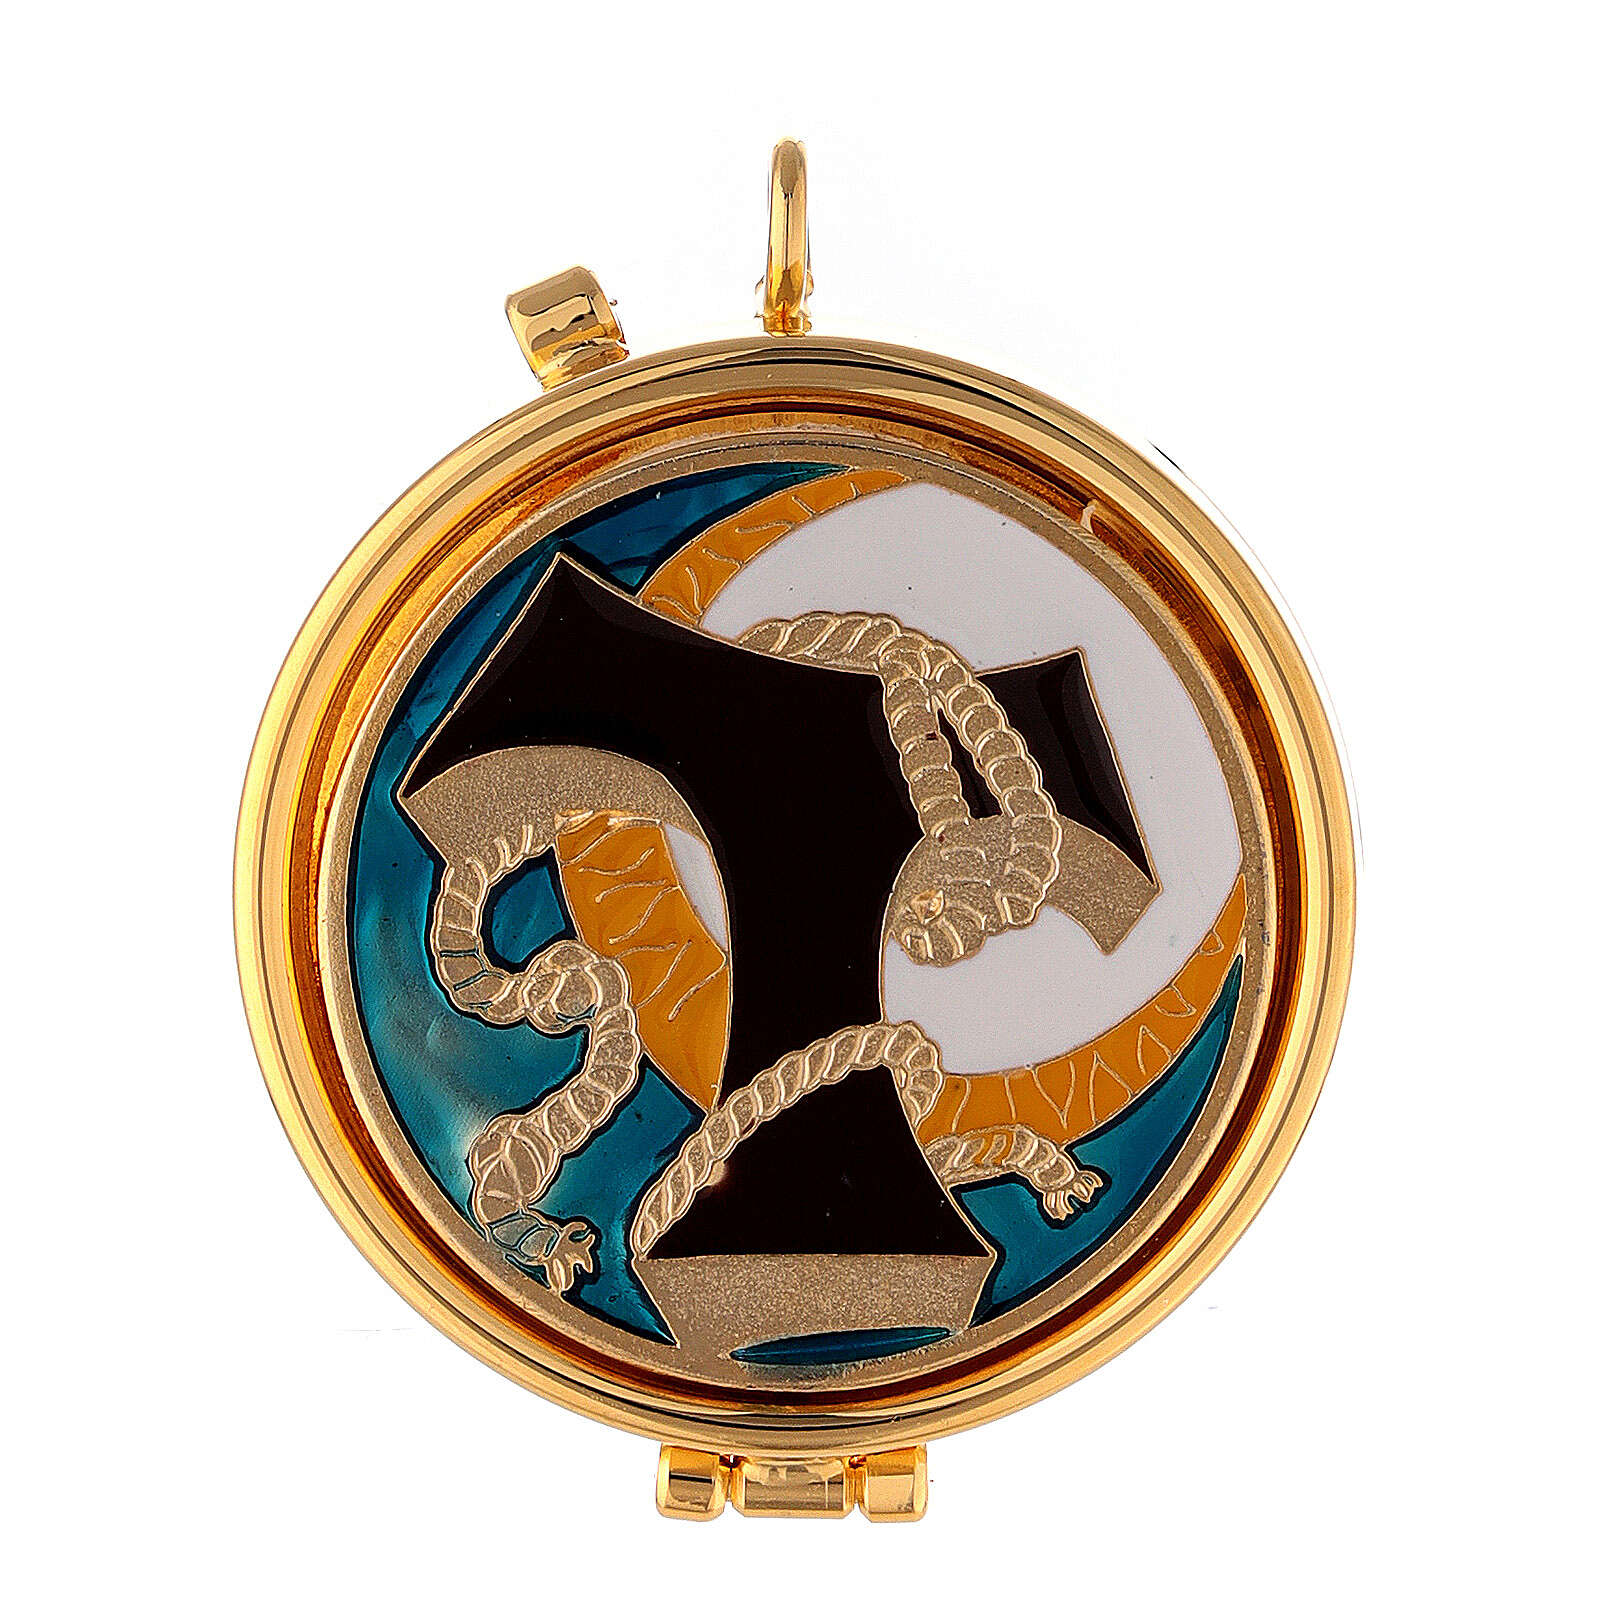 Pyx with Tau and cord enamel decoration on the cover 3